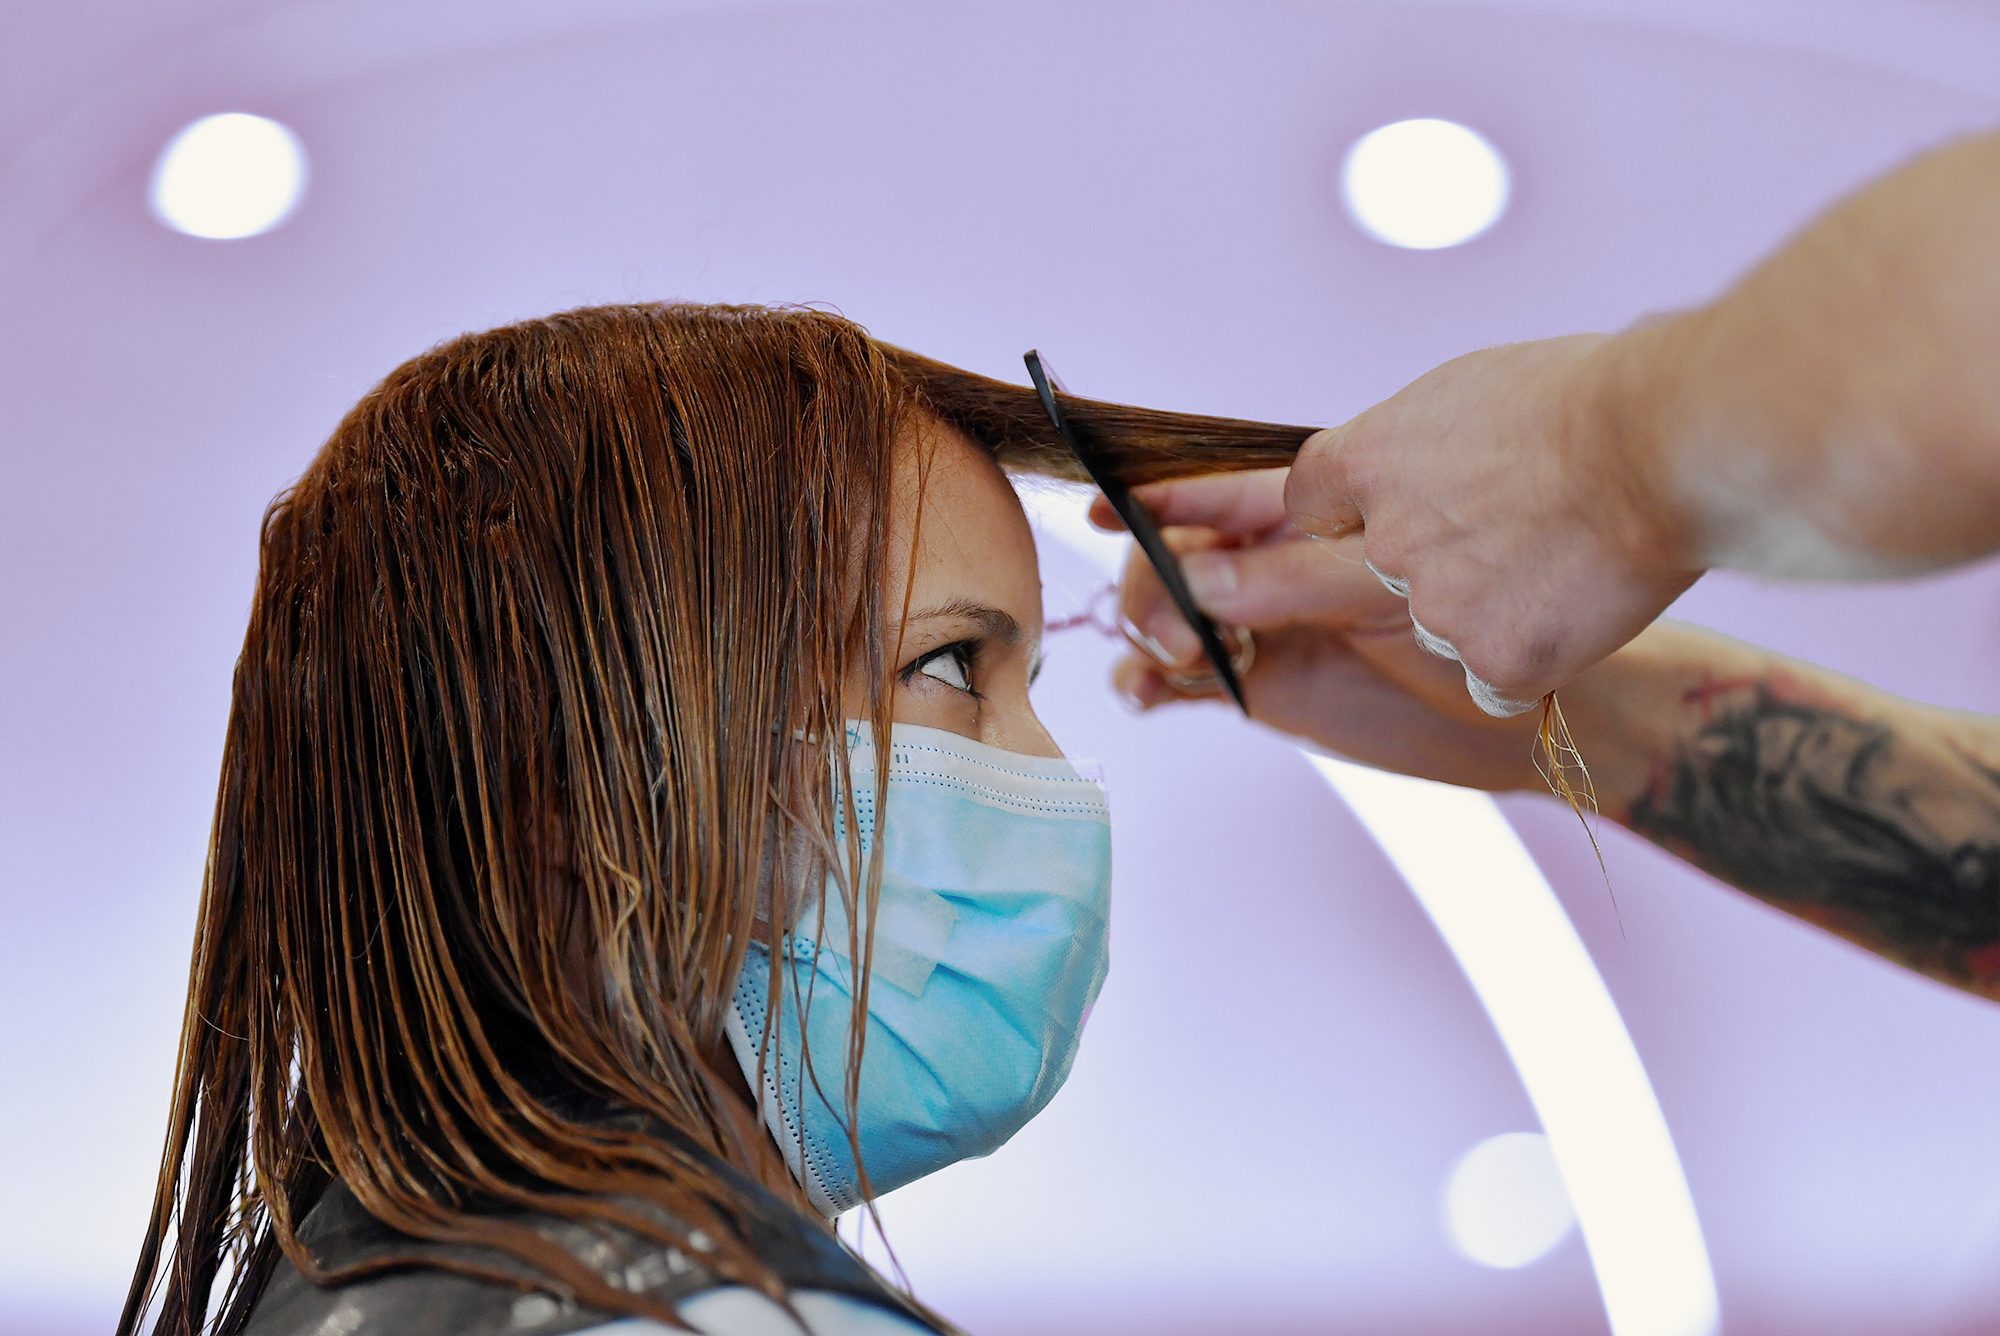 """A woman gets a haircut at the """"Hair & Look"""" salon, on May 18, 2020 in Ixelles, as Belgium eases lockdown measures taken to curb the spread of the COVID-19 pandemic, caused by the novel coronavirus. (Photo by JOHN THYS / AFP) (Photo by JOHN THYS/AFP via Getty Images)"""